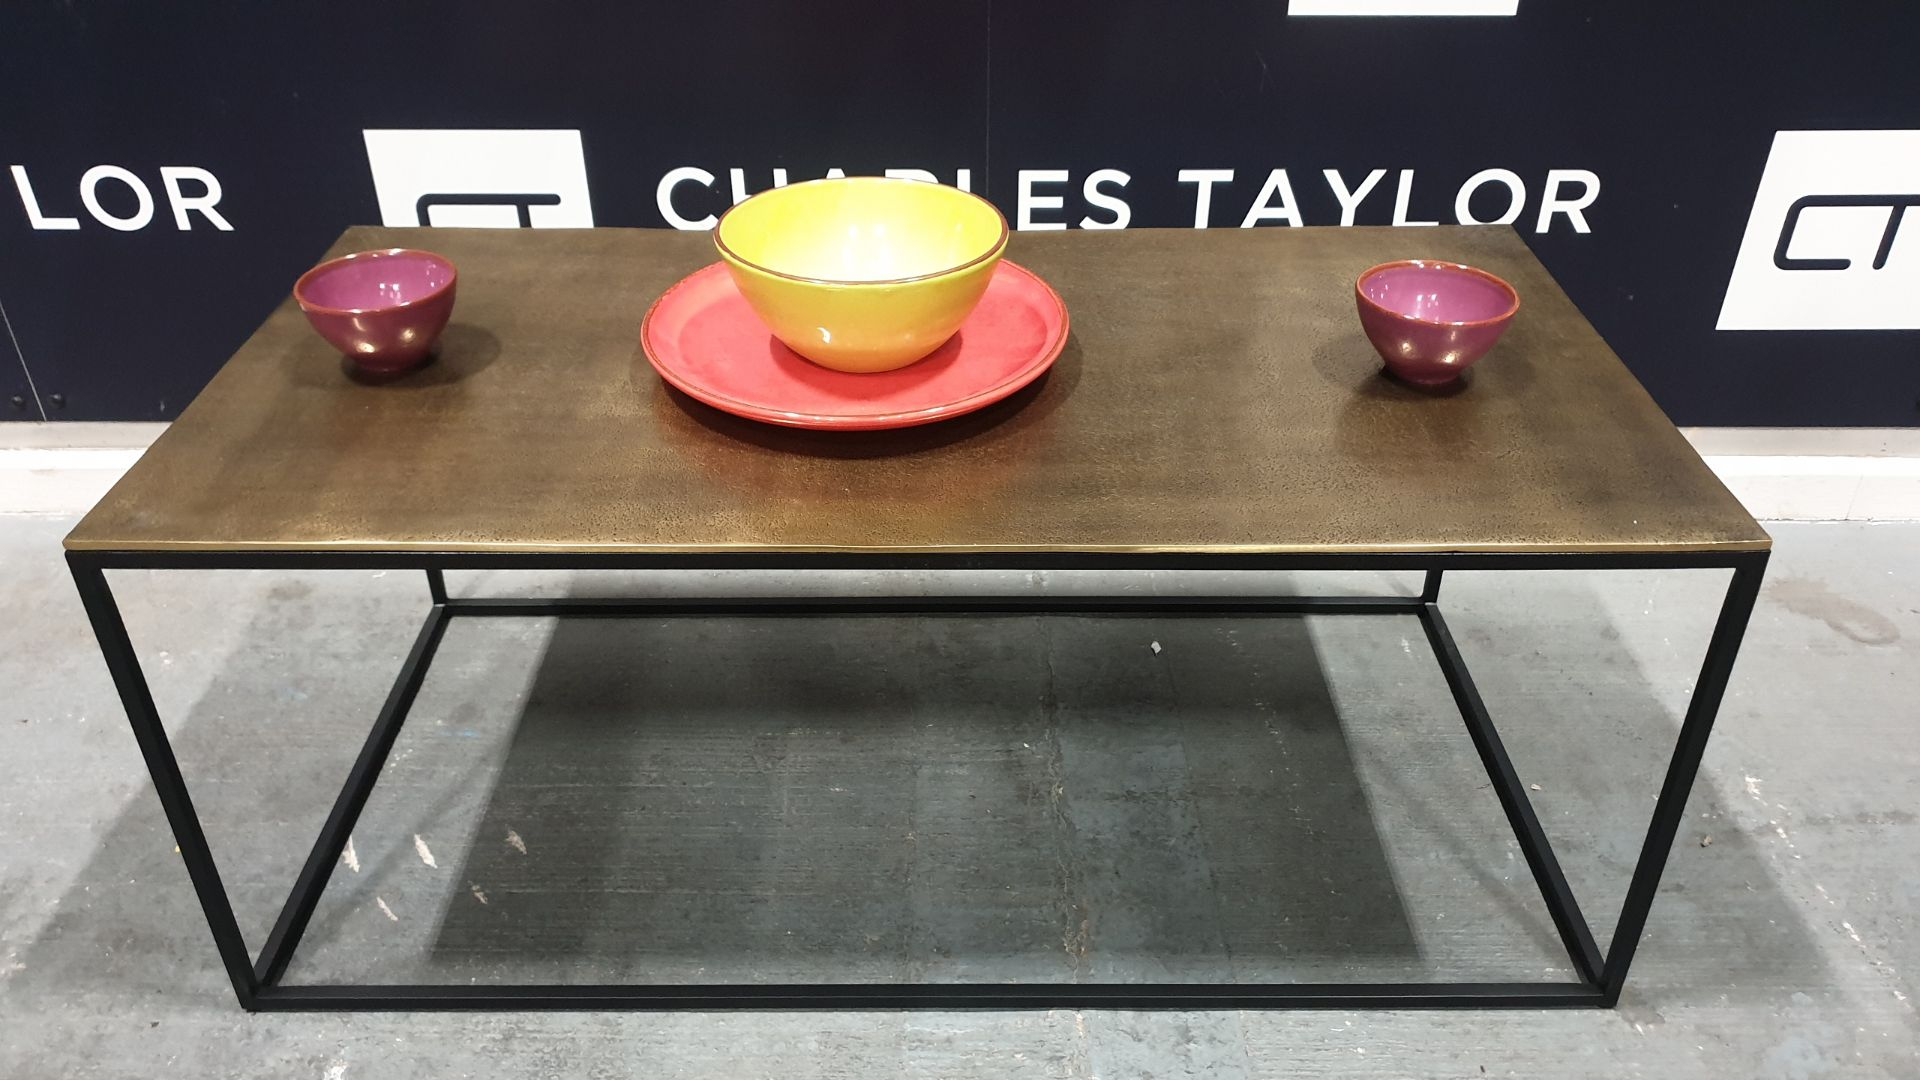 Lot 1076 - BRAND NEW CONTENT BY TERENCE CONRAN FERA RECTANGULAR COFFEE TABLE WITH CAST TOP. - 50 X 100 X